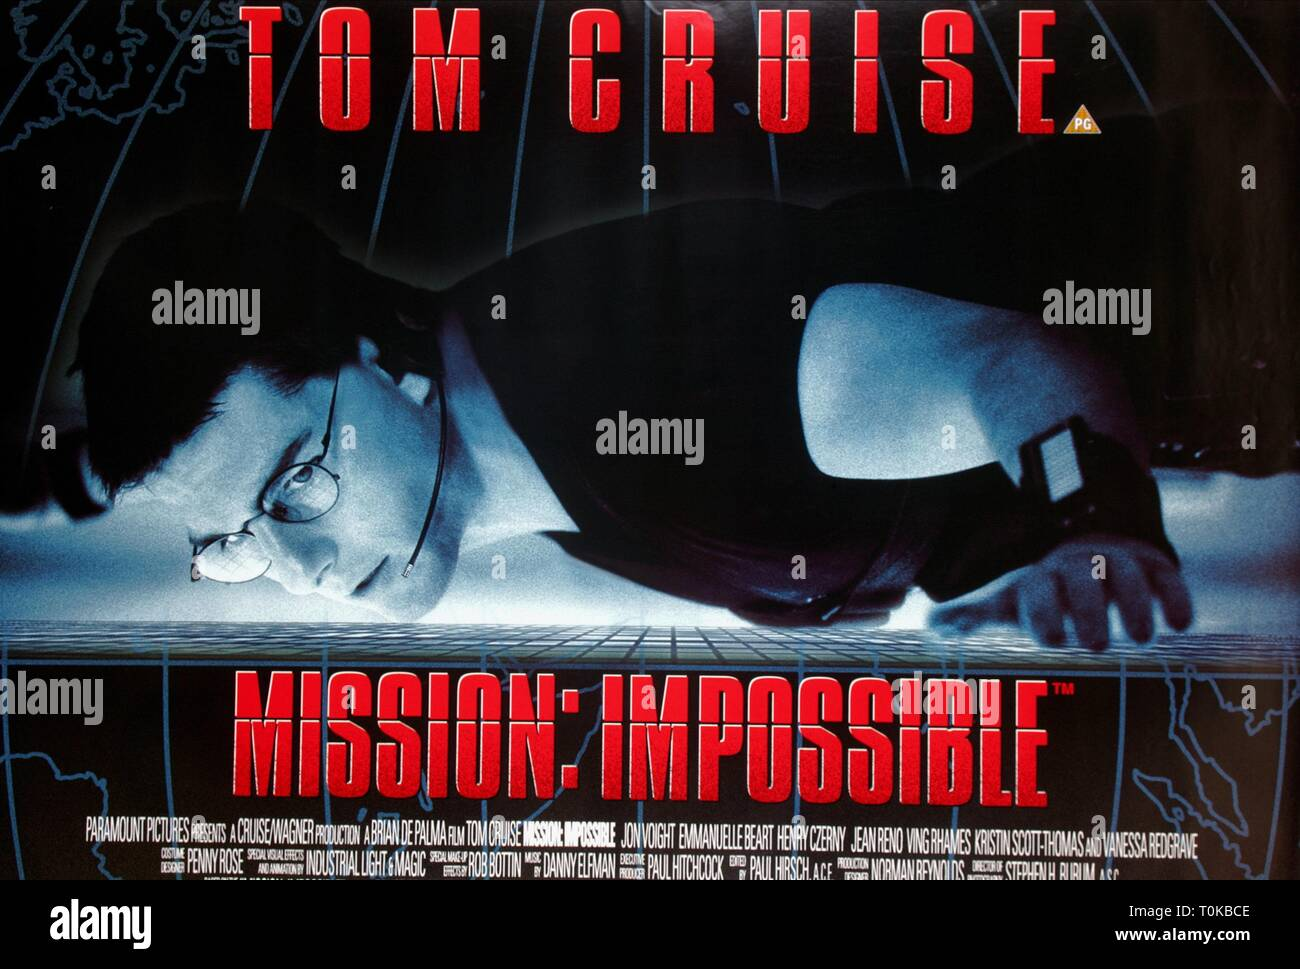 Tom Cruise Poster Mission Impossible 1996 Stock Photo Alamy